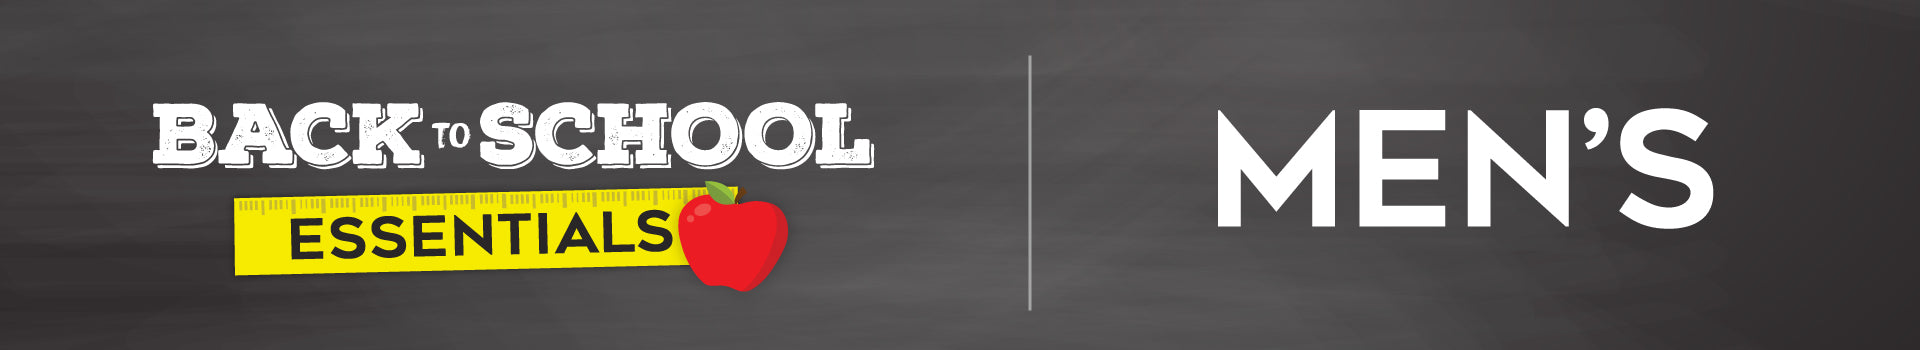 Save up to 60% off Back-to-School brand name Men's essentials at SVP Sports